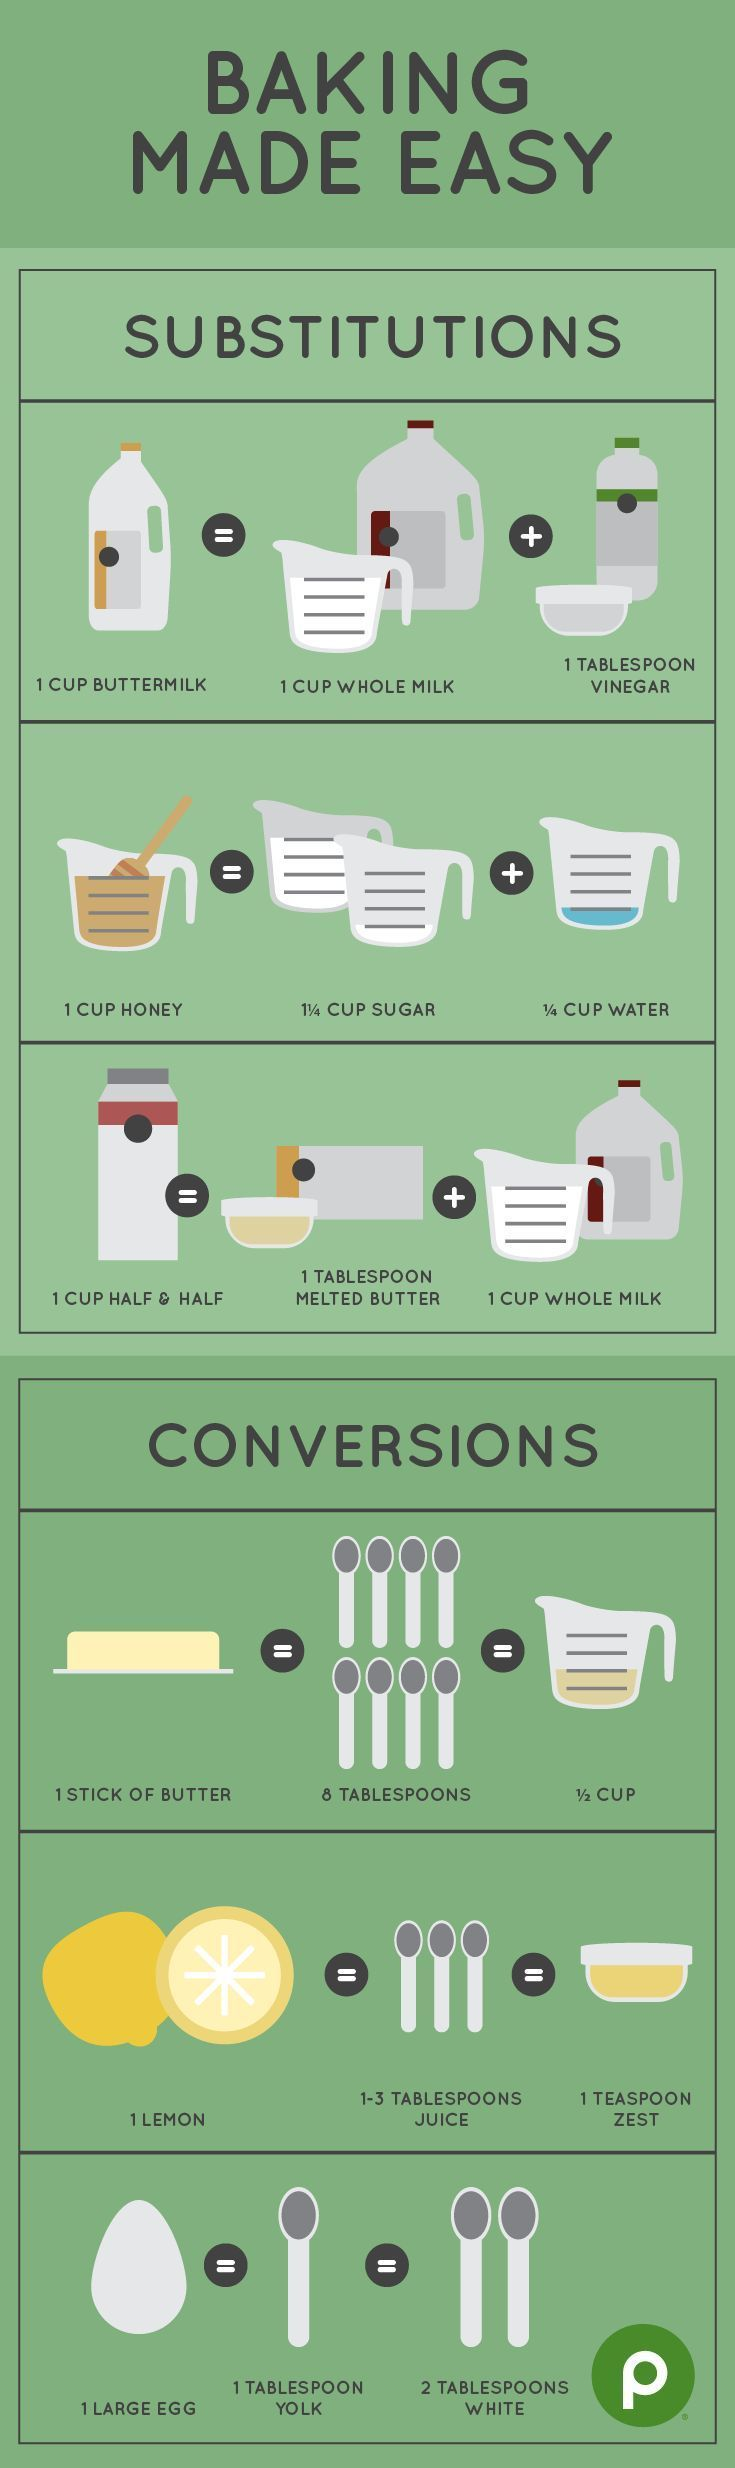 Need to know what to sub in and out of your favorite holiday or everyday recipes—and how much? Go ahead and pin this little cheat sheet to use while you're whipping up your favorite dishes and desserts with ingredients like buttermilk, vinegar, sugar, honey, lemon, and eggs.